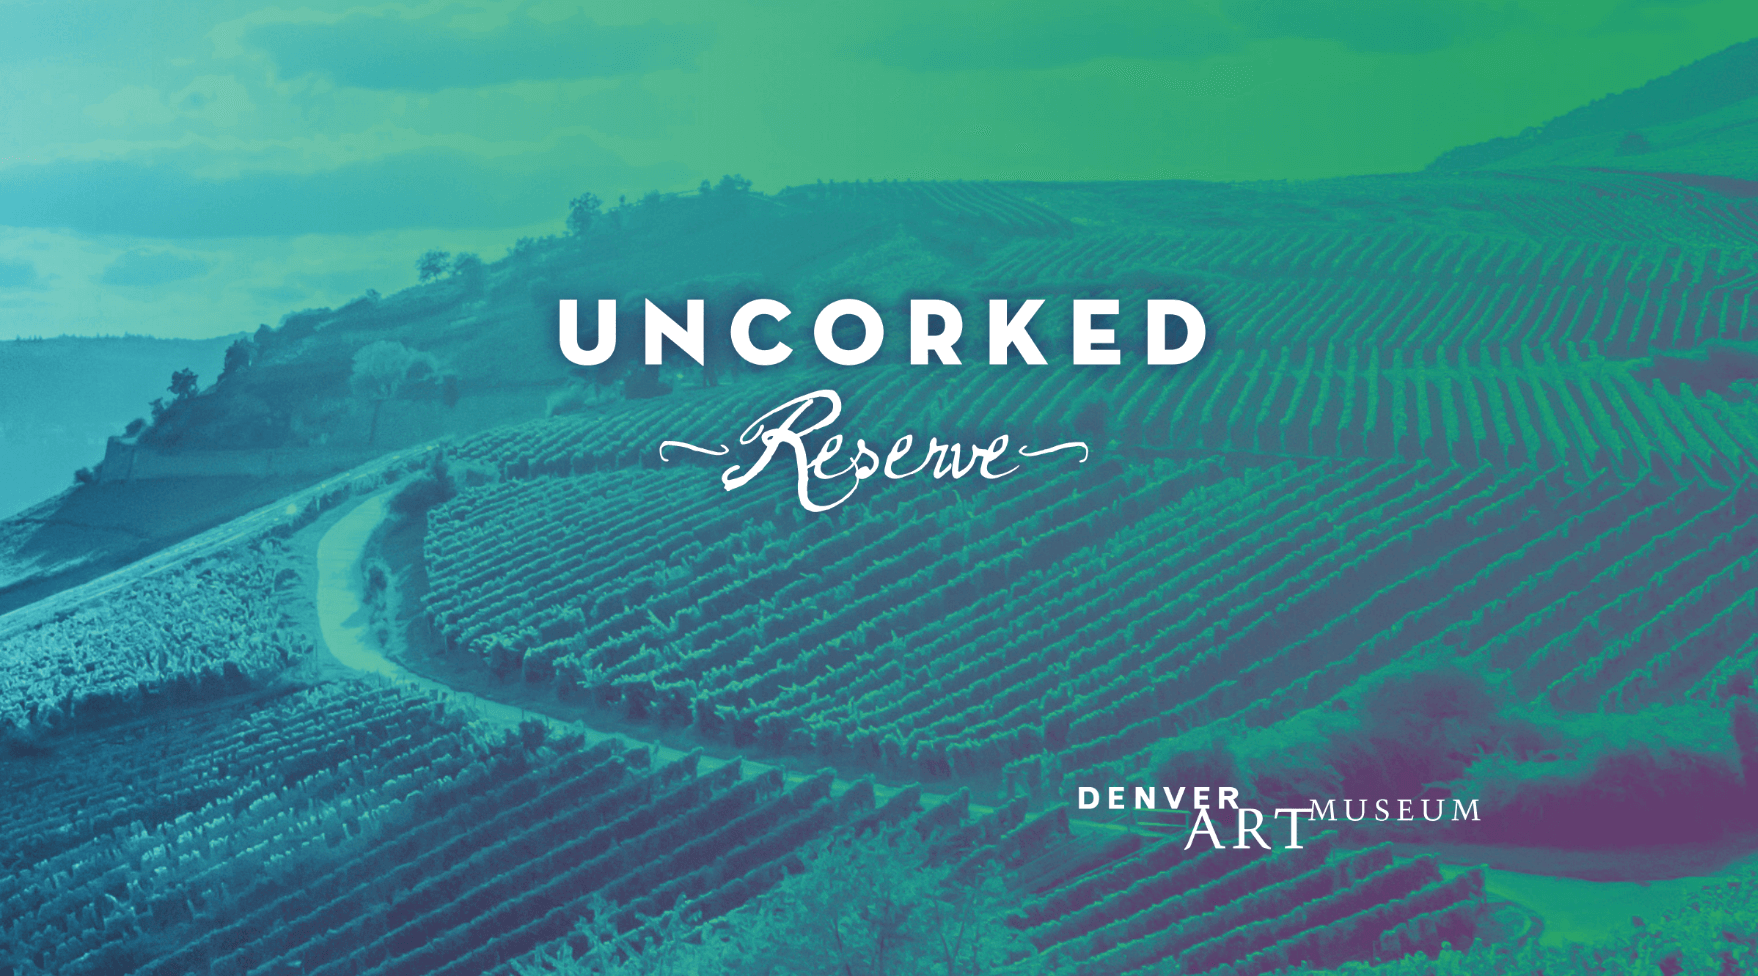 Denver Art Museum Uncorked Reserve 2019